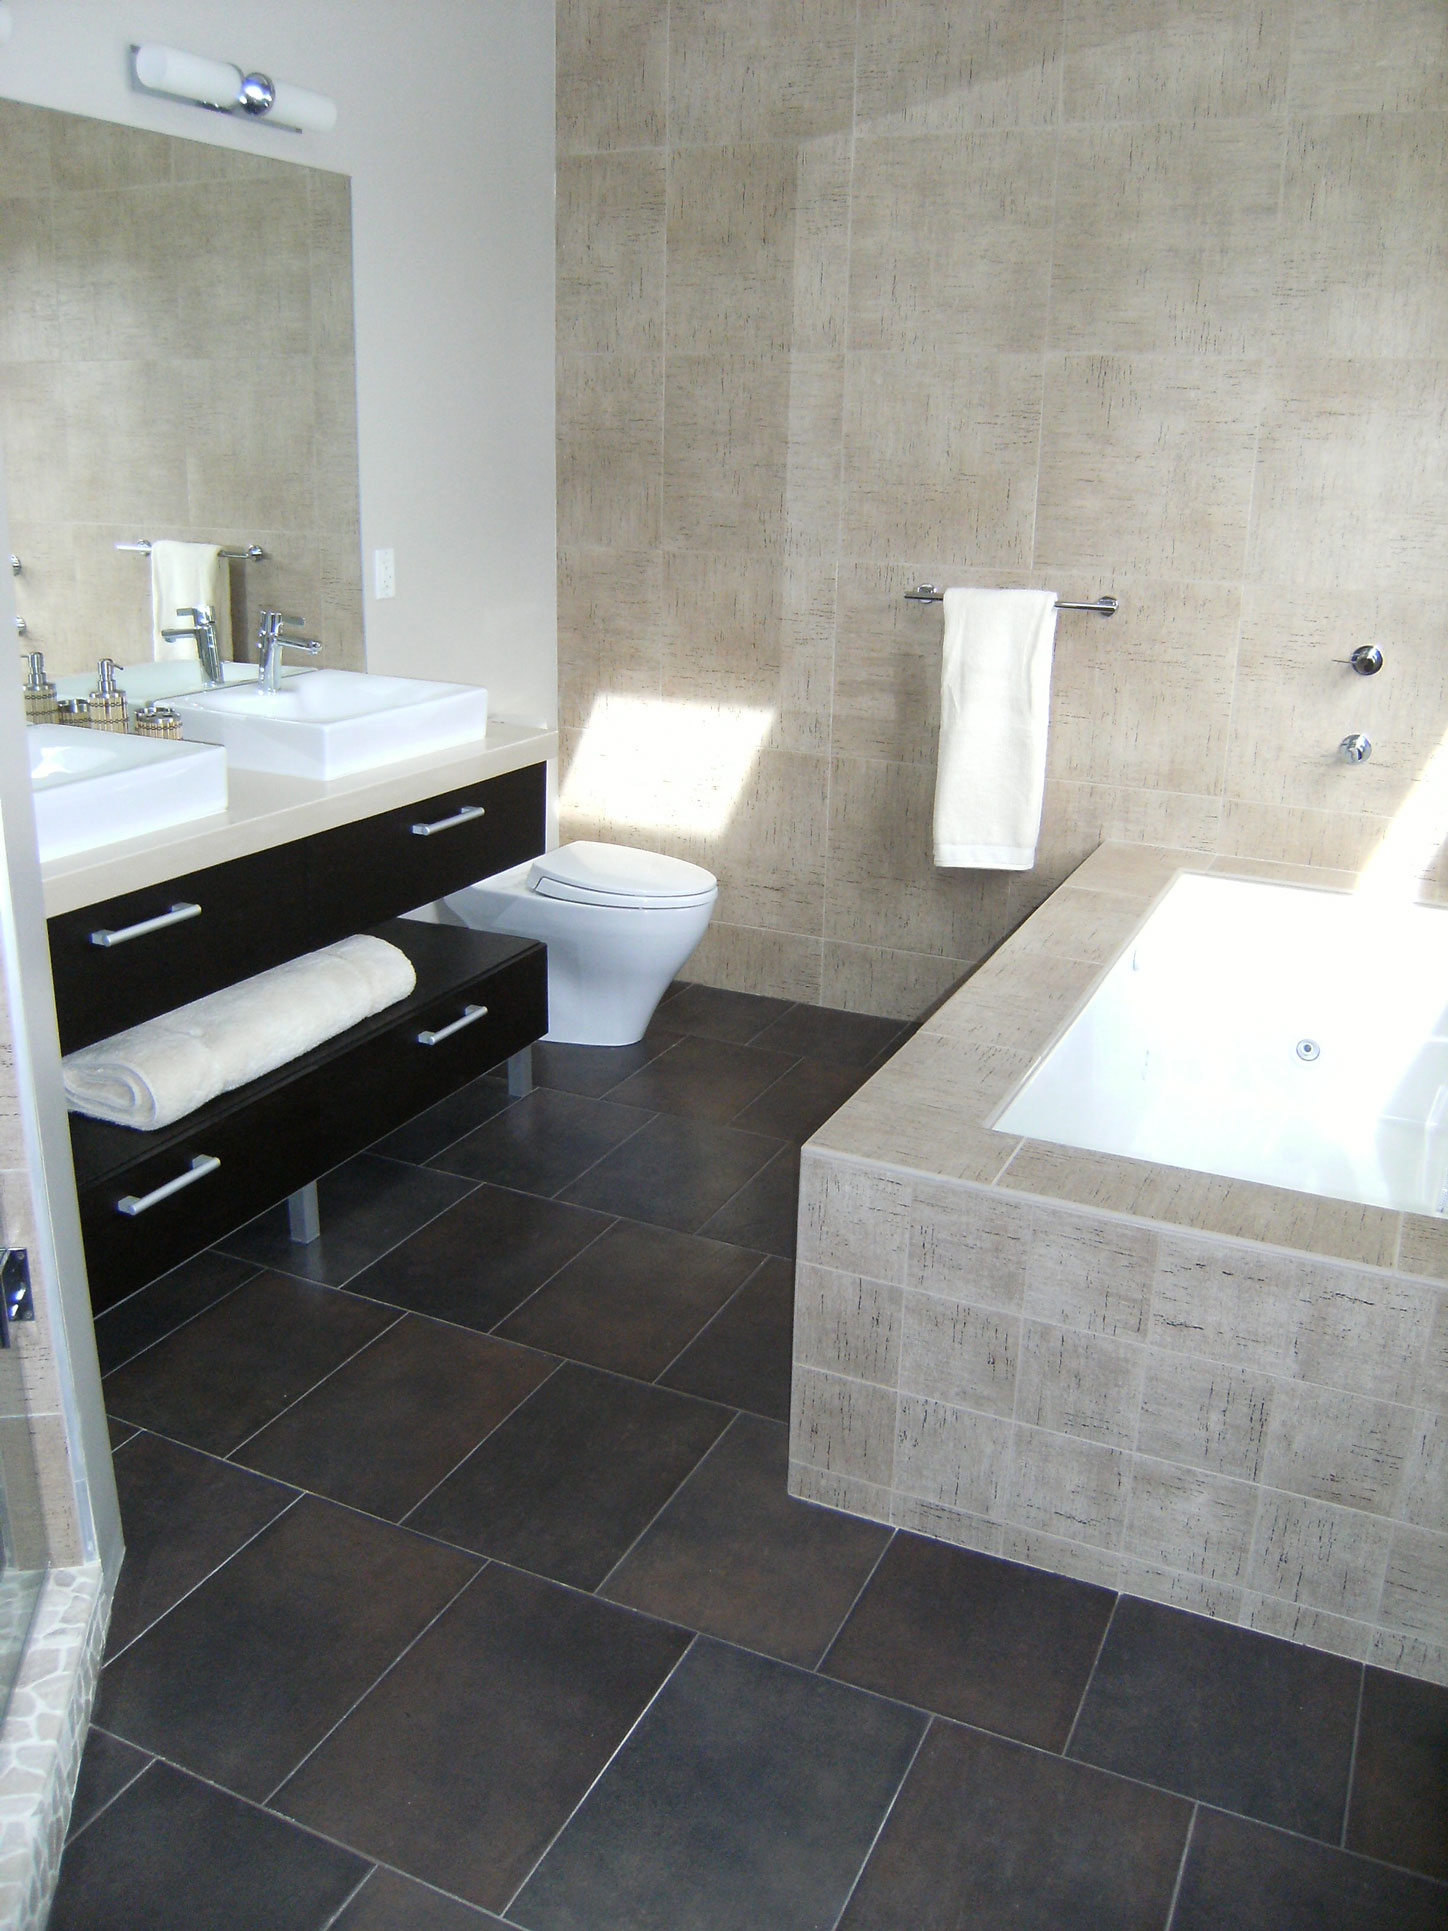 New construction bath design albuquerque interior design for Latest bathroom designs 2015